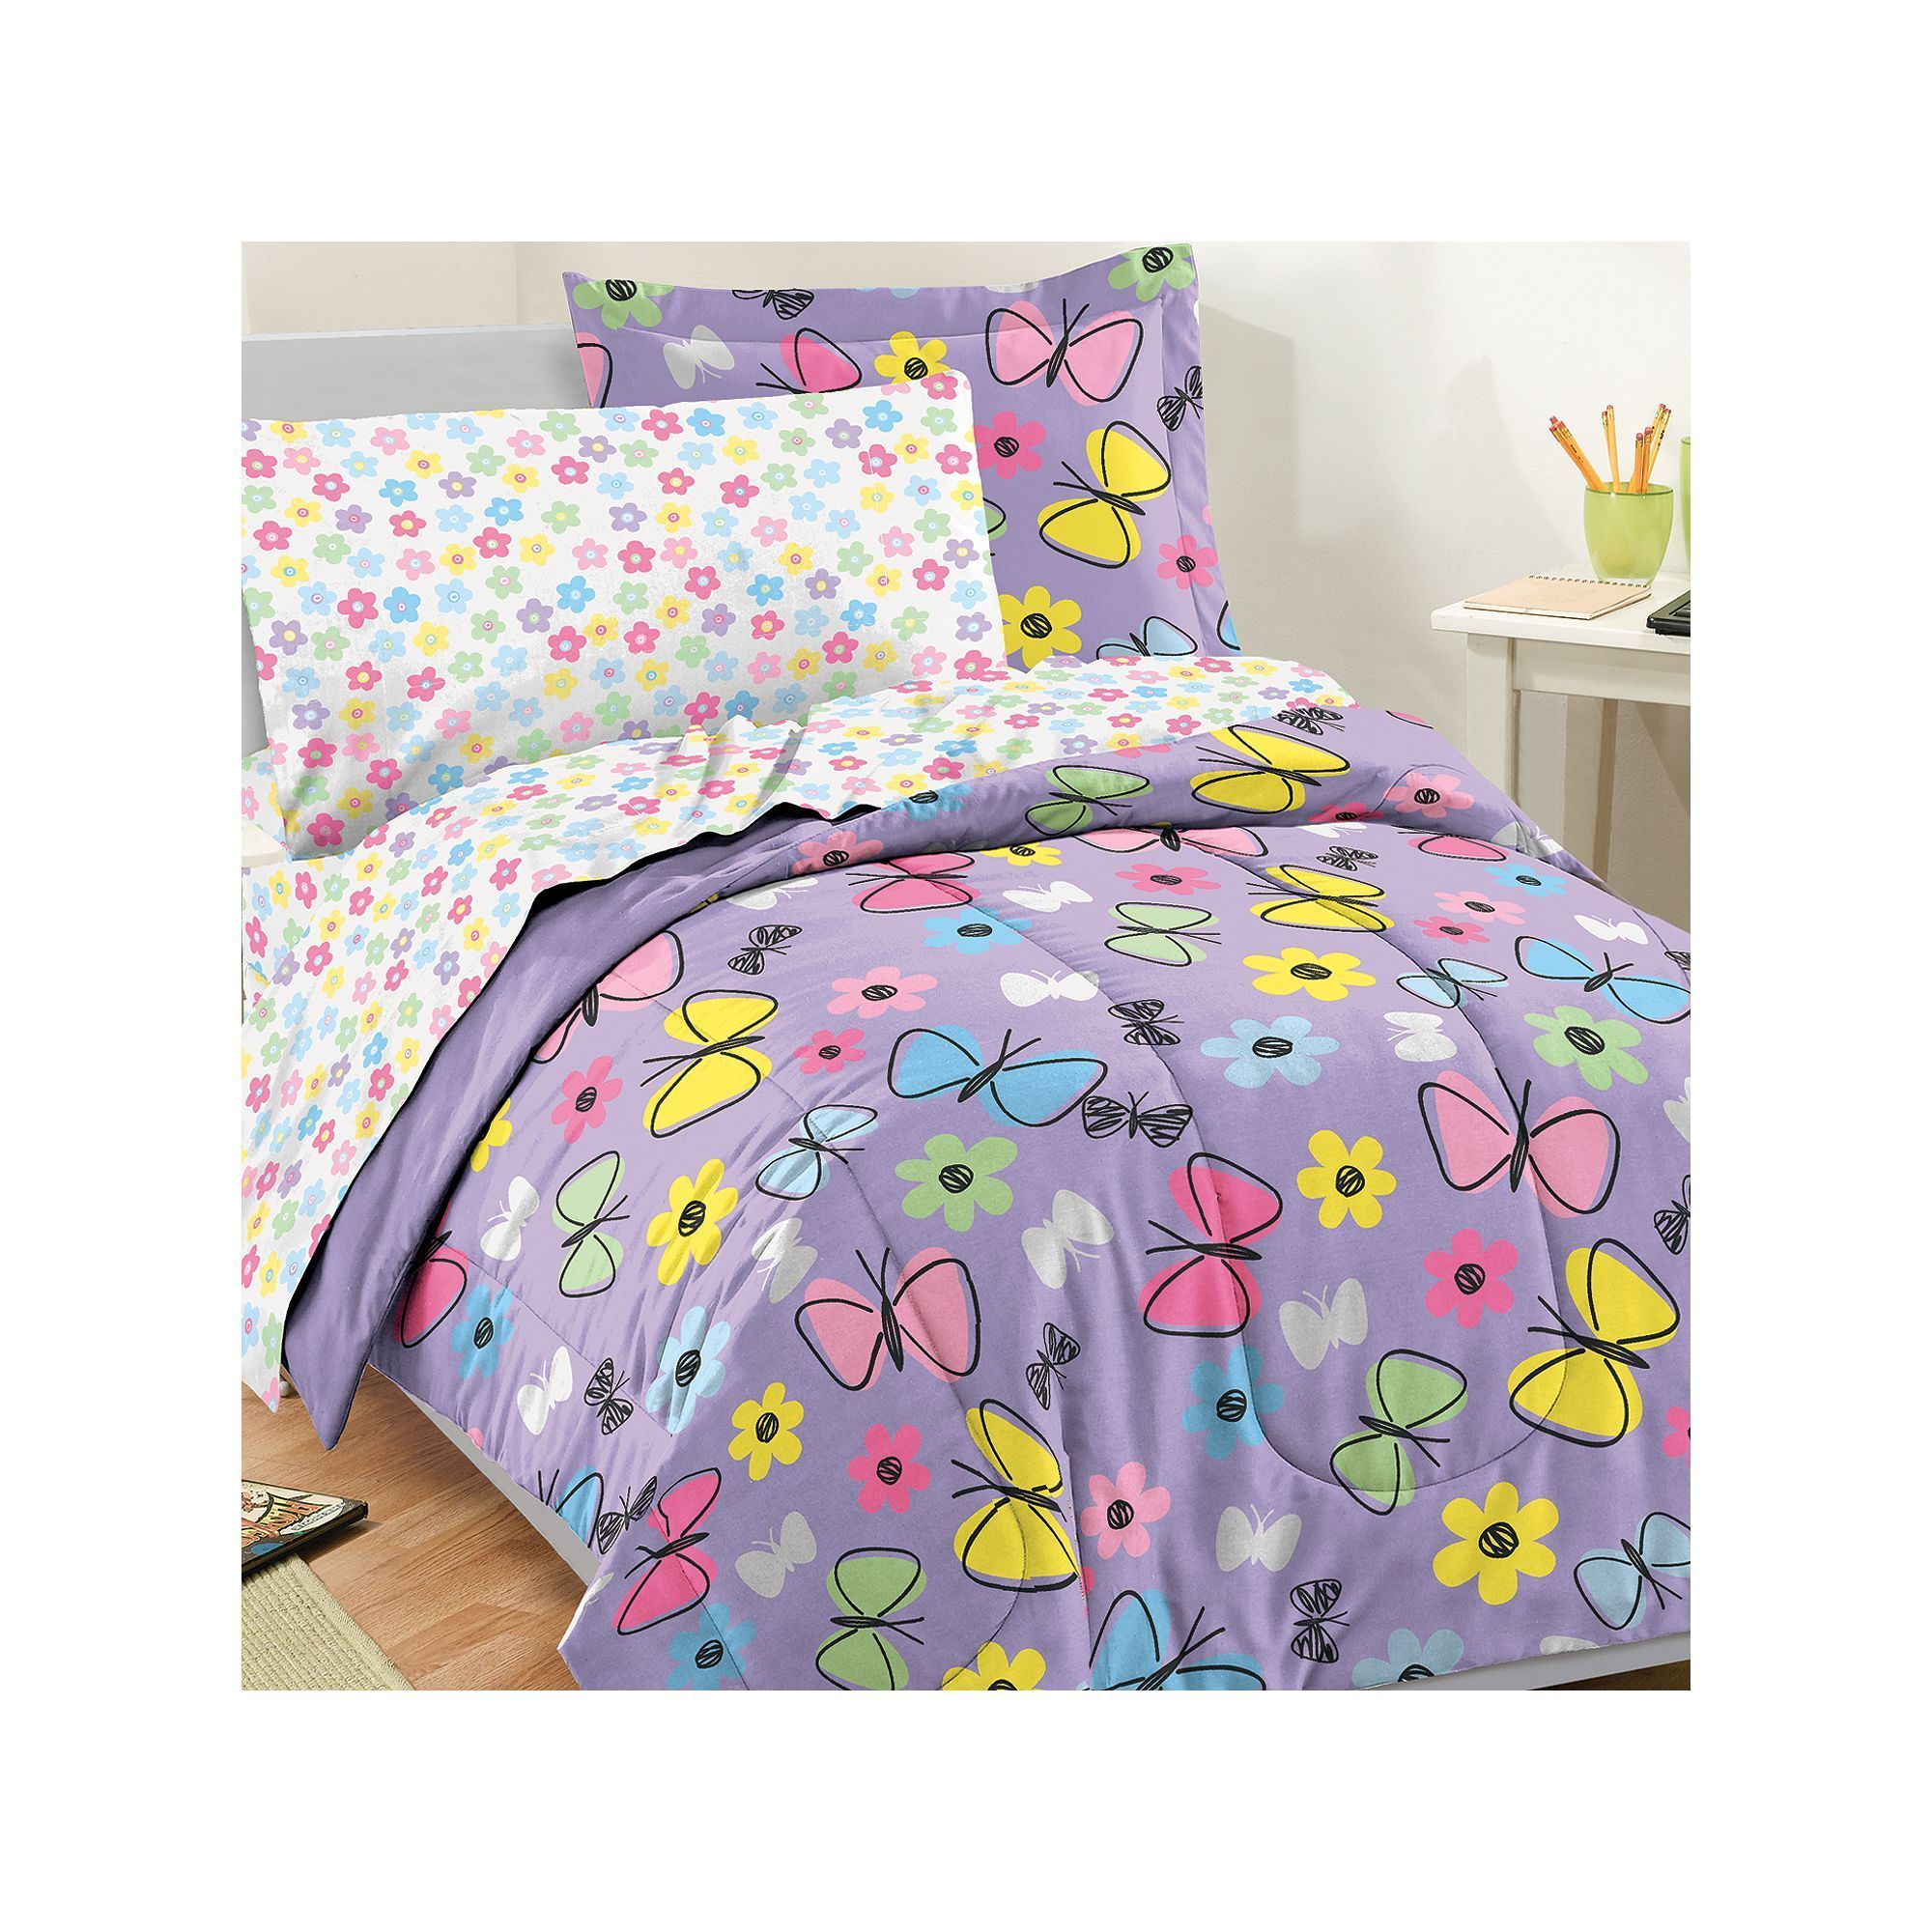 covers kids bedding blog comforters vs butterfly katie comforter dreams duvet